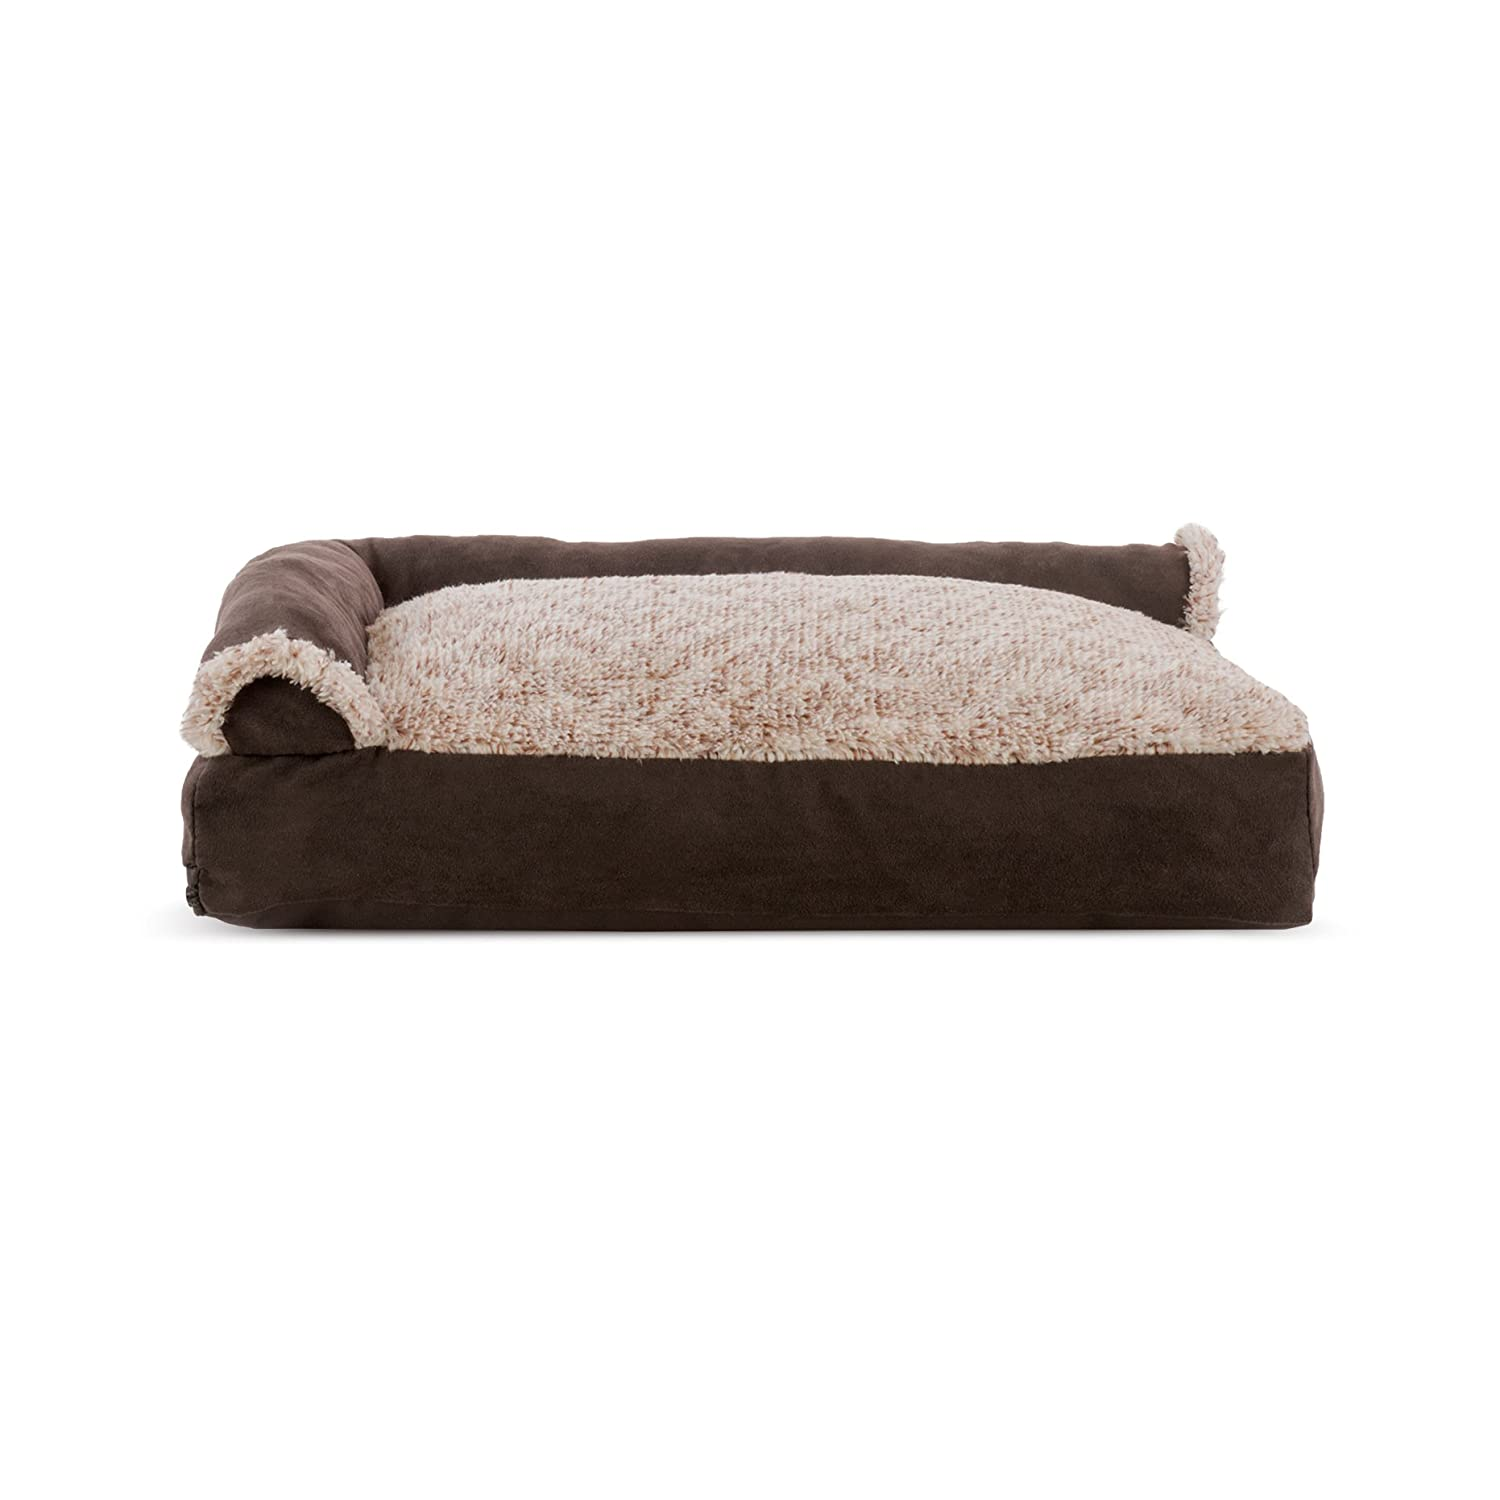 Two-Tone Espresso Small Two-Tone Espresso Small FurHaven Pet Dog Bed   Faux Fur & Suede Chaise Lounge Pillow Sofa-Style Pet Bed for Dogs & Cats, Espresso, Small